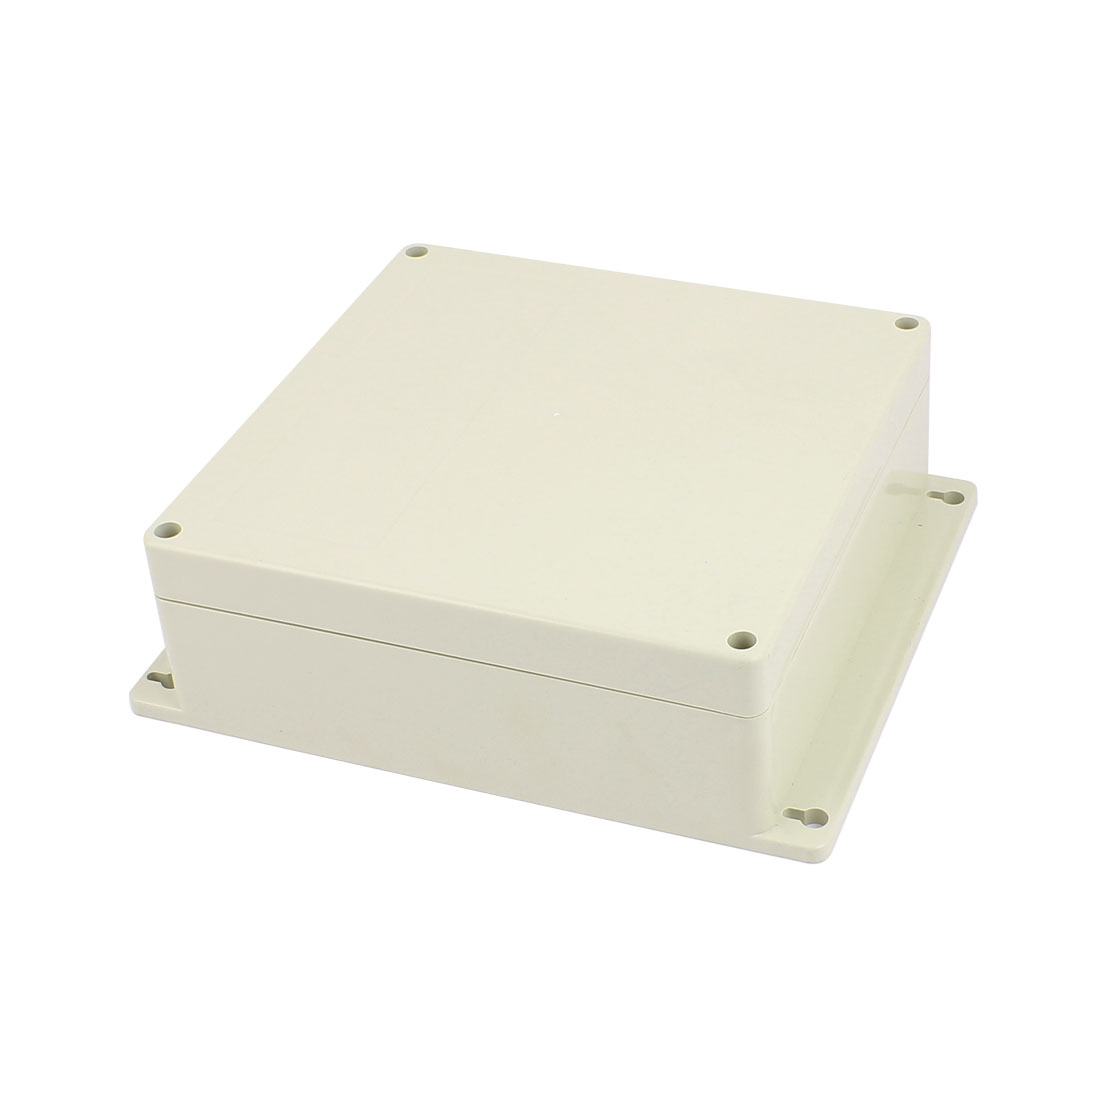 Dustproof IP65 Junction Box DIY Terminal Connection Enclosure Adaptable 184mm x 180mm x 62mm